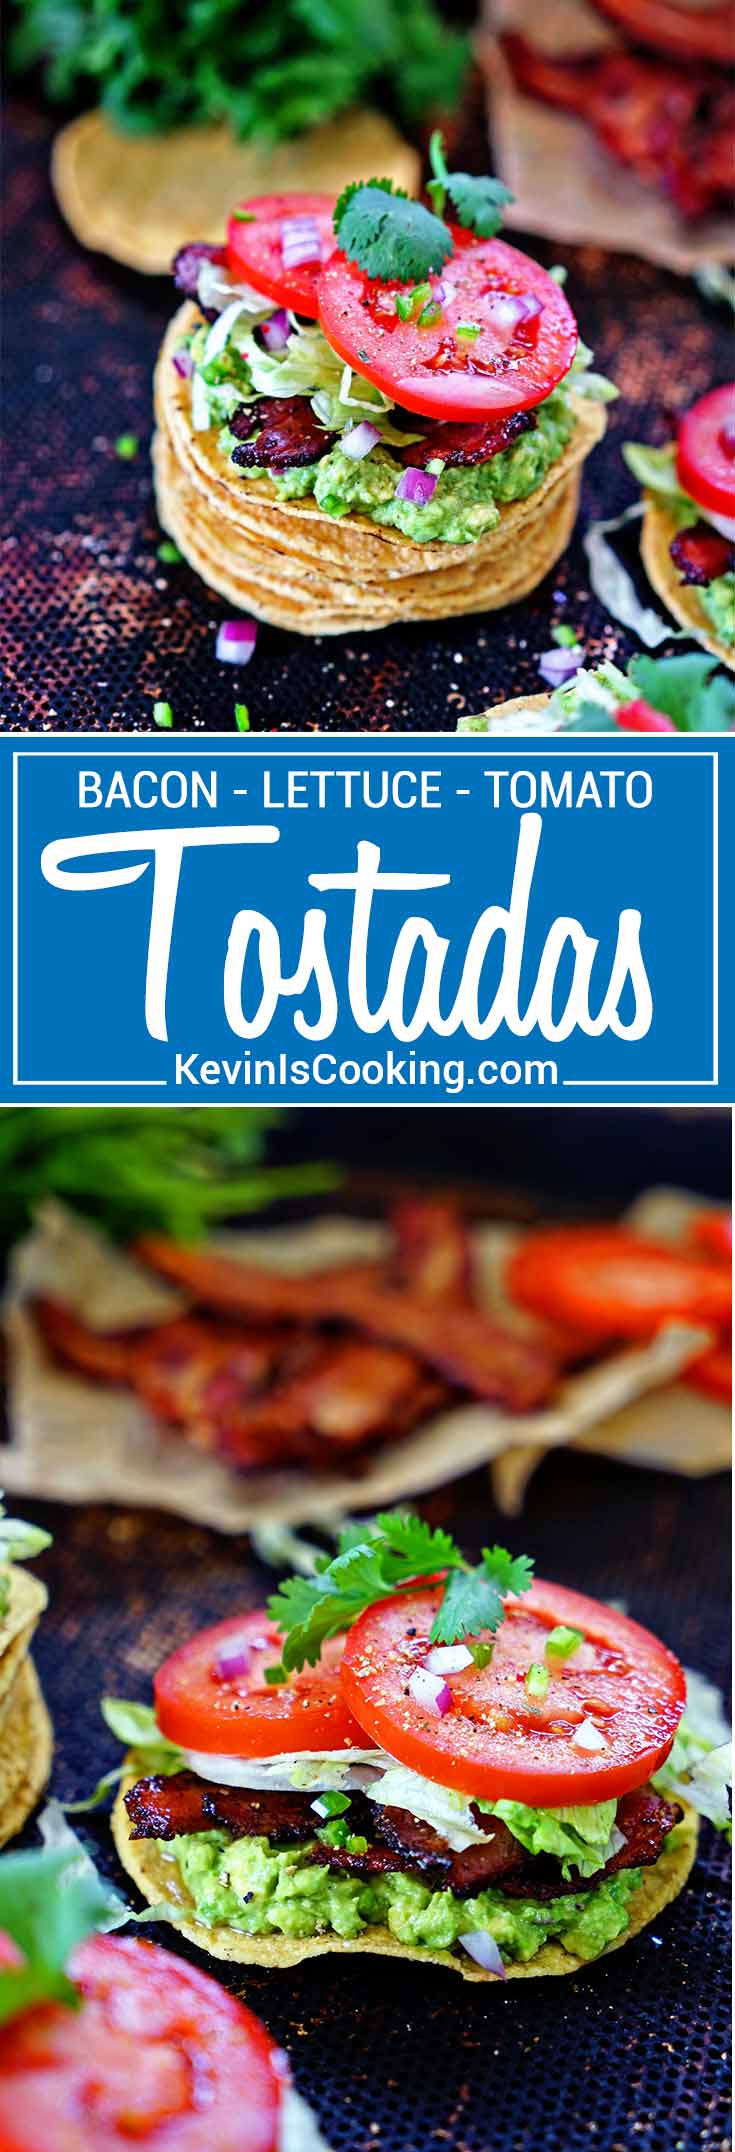 BLT Tostadas with Guacamole - A Mexican twist on an American classic sandwich - bacon, lettuce, tomatoes and a spicy guacamole all atop a crunchy tostada.